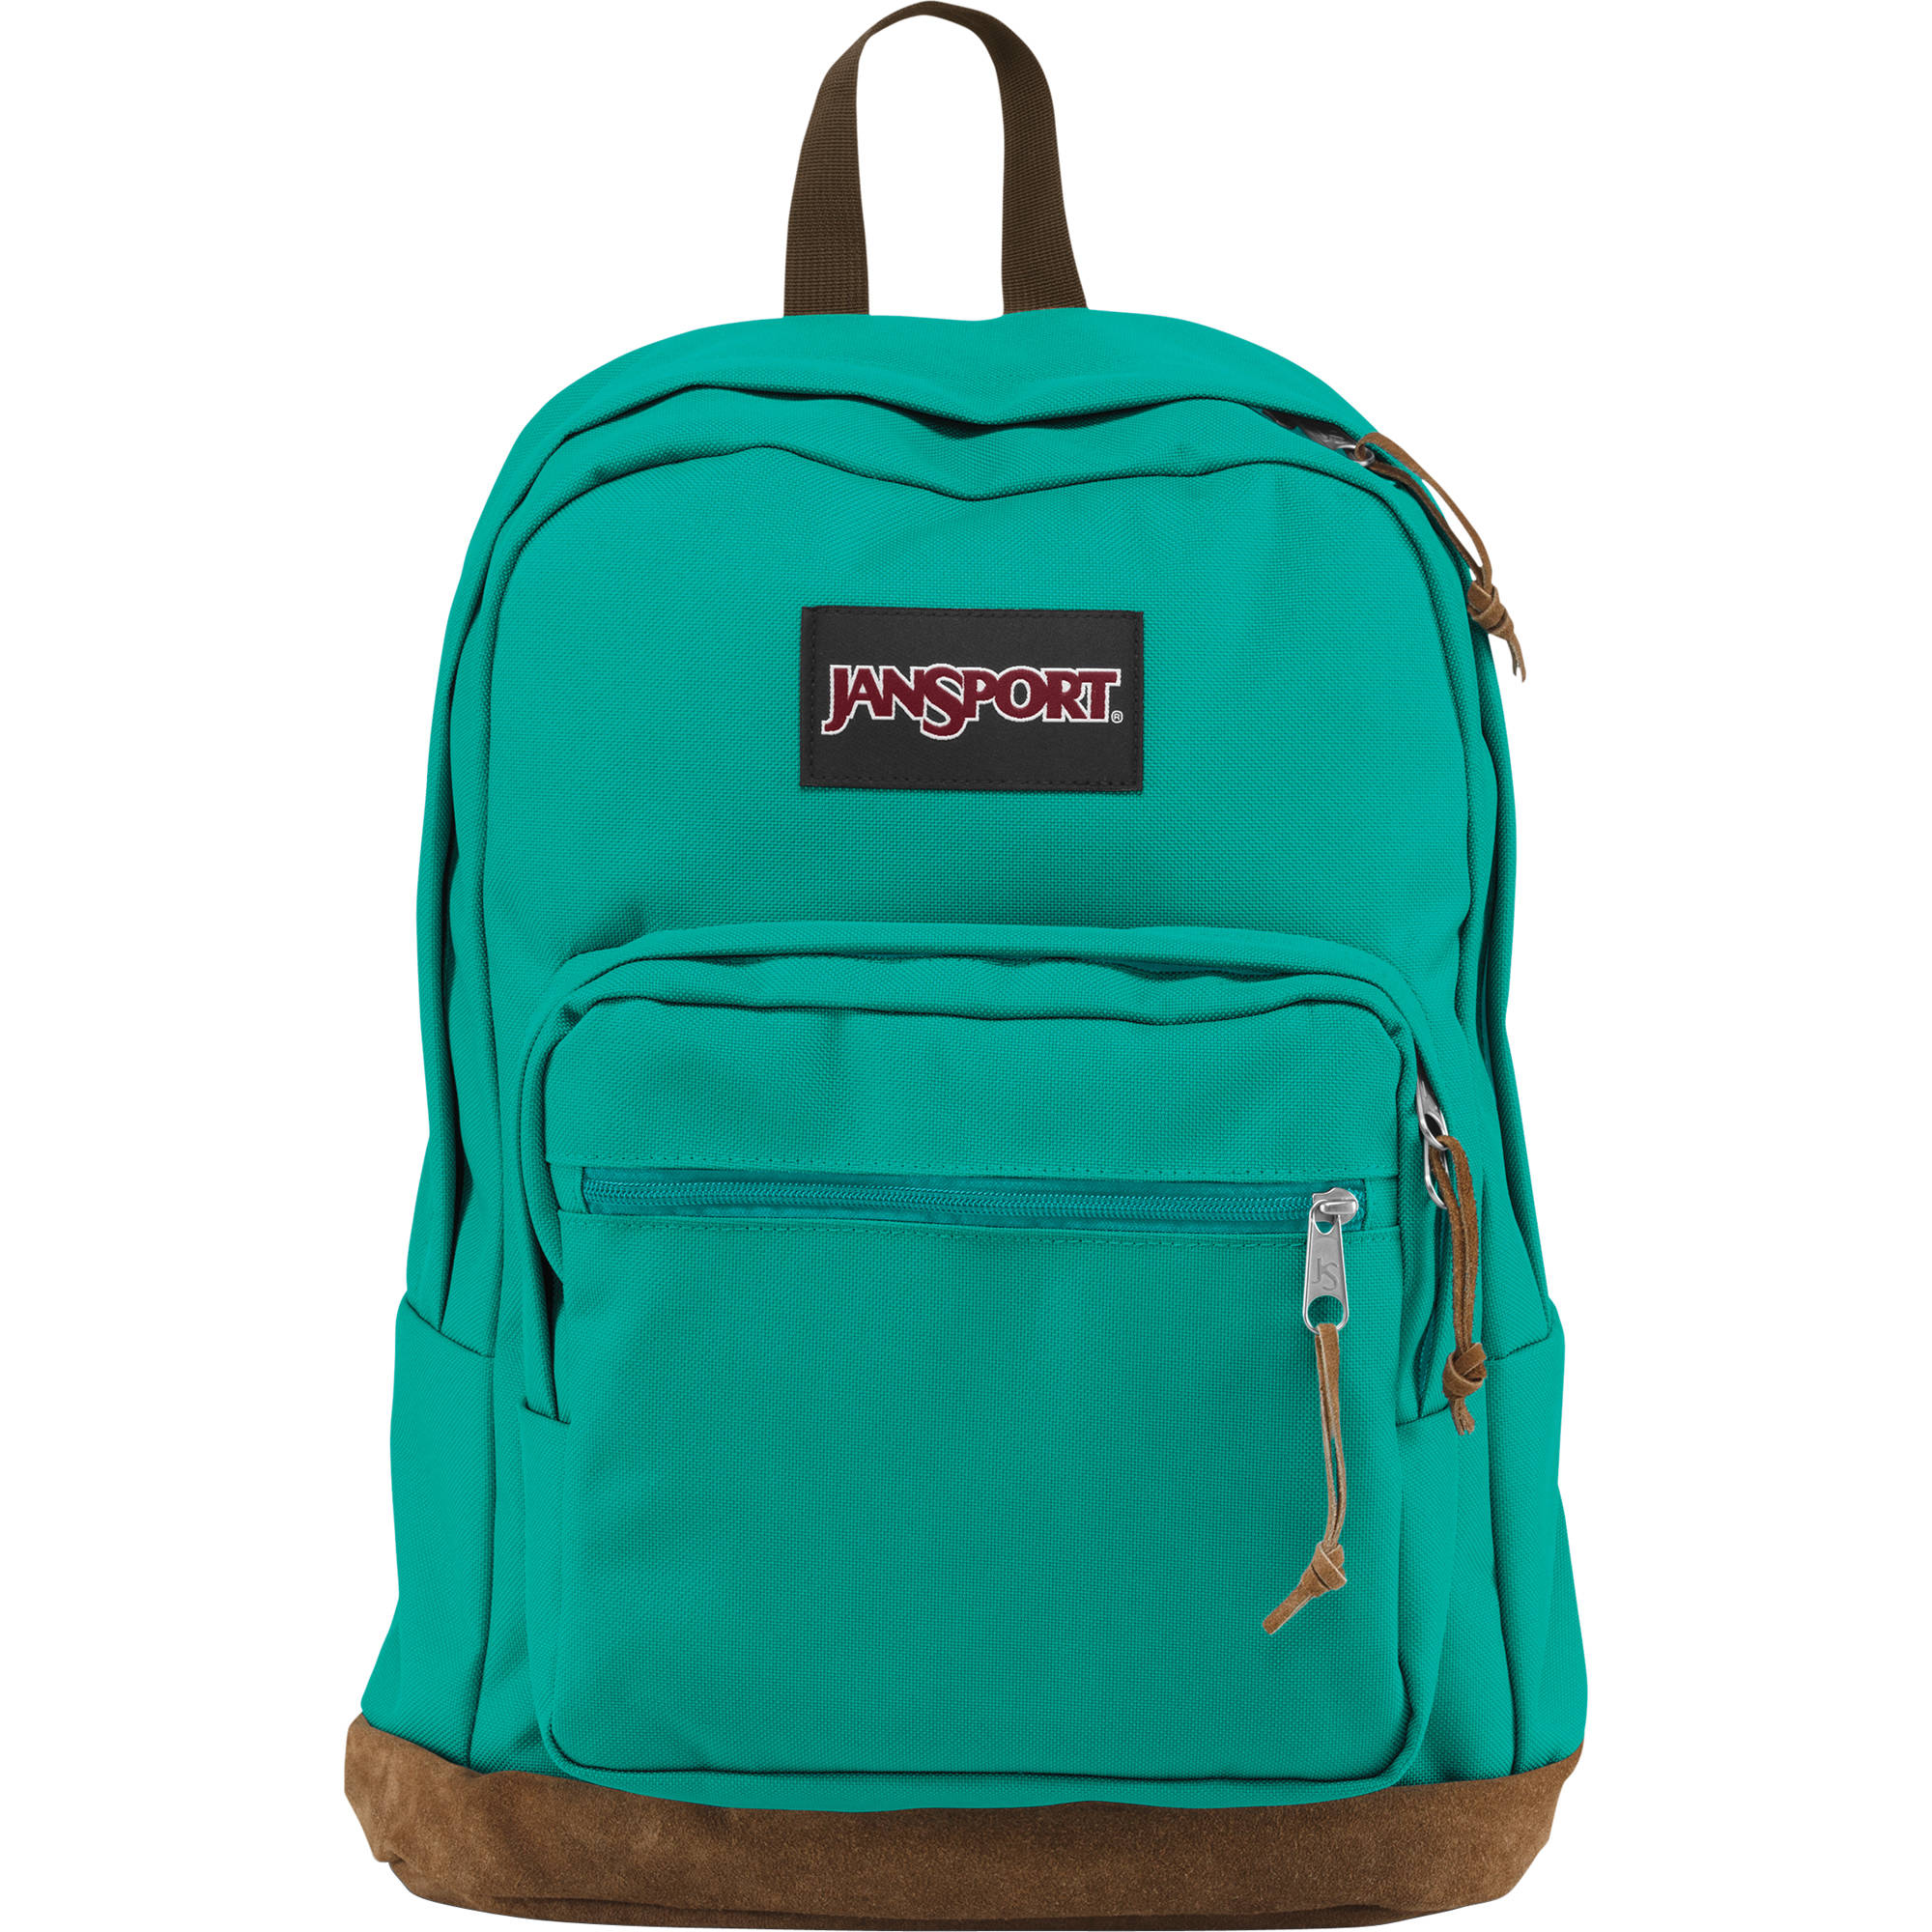 JanSport Right Pack Backpack (Spanish Teal) TYP701H B&H Photo